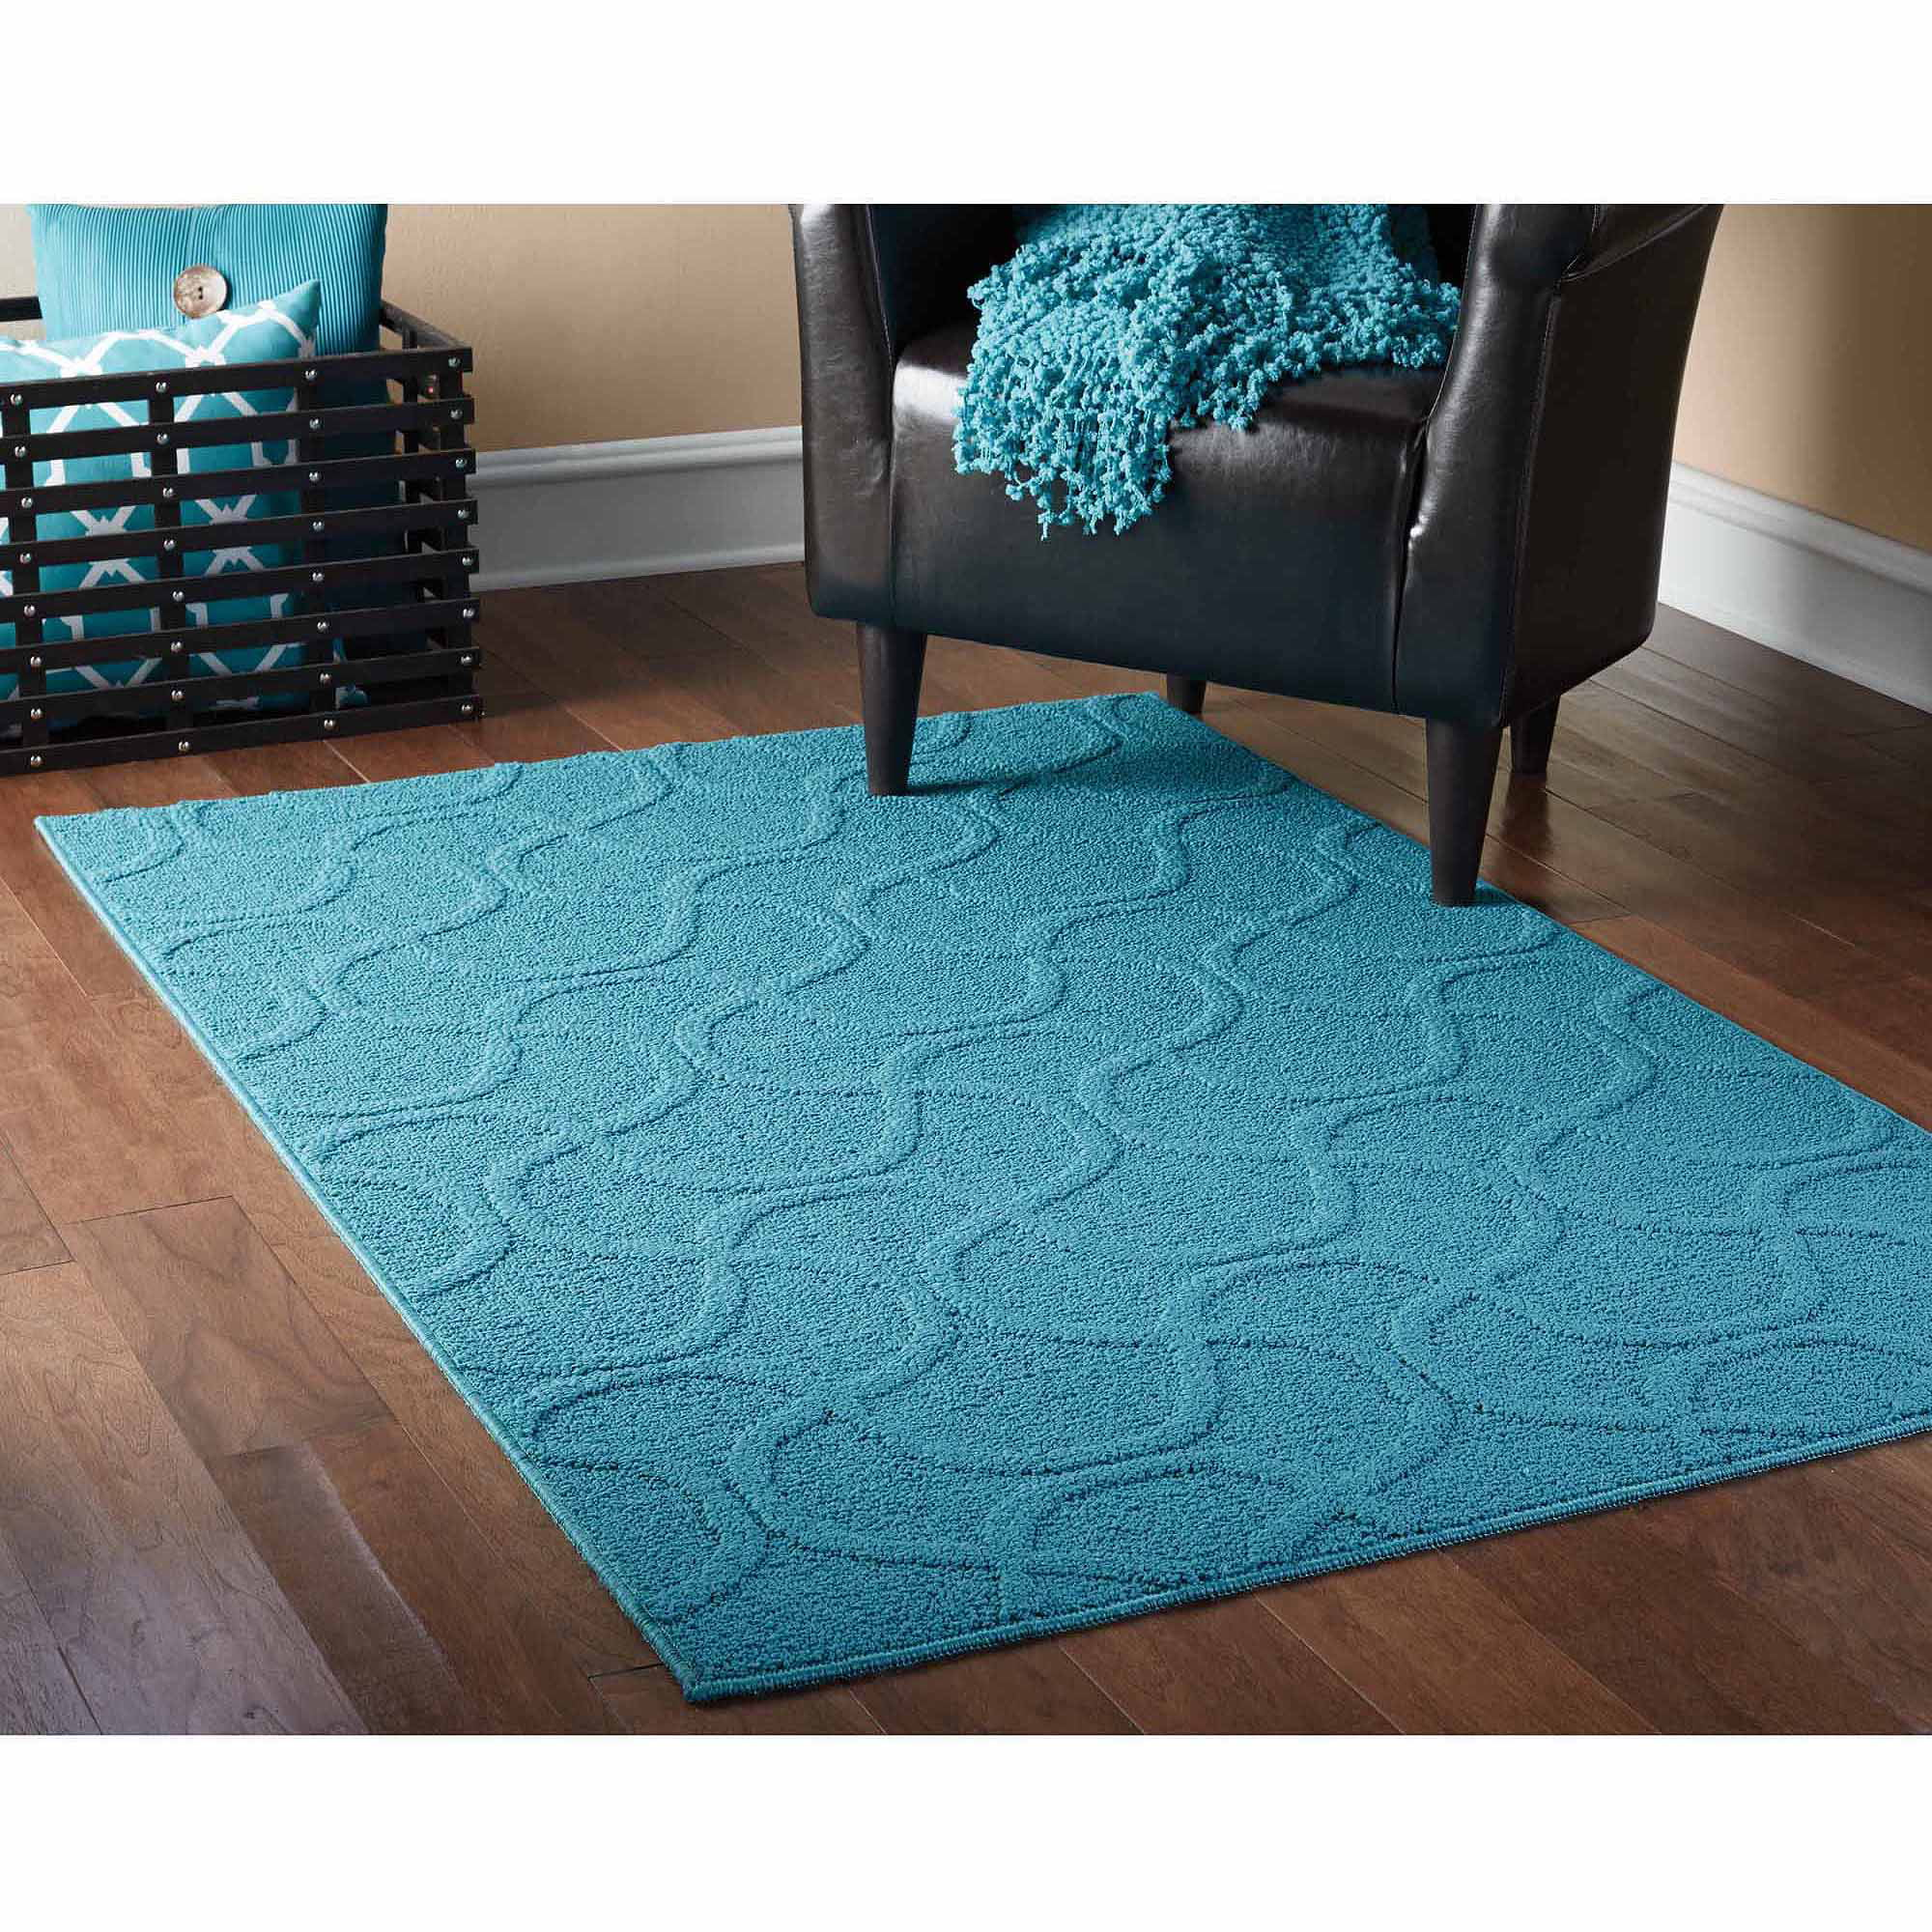 Mainstays Brentwood Collection Drizzle Style Area Rug Teal